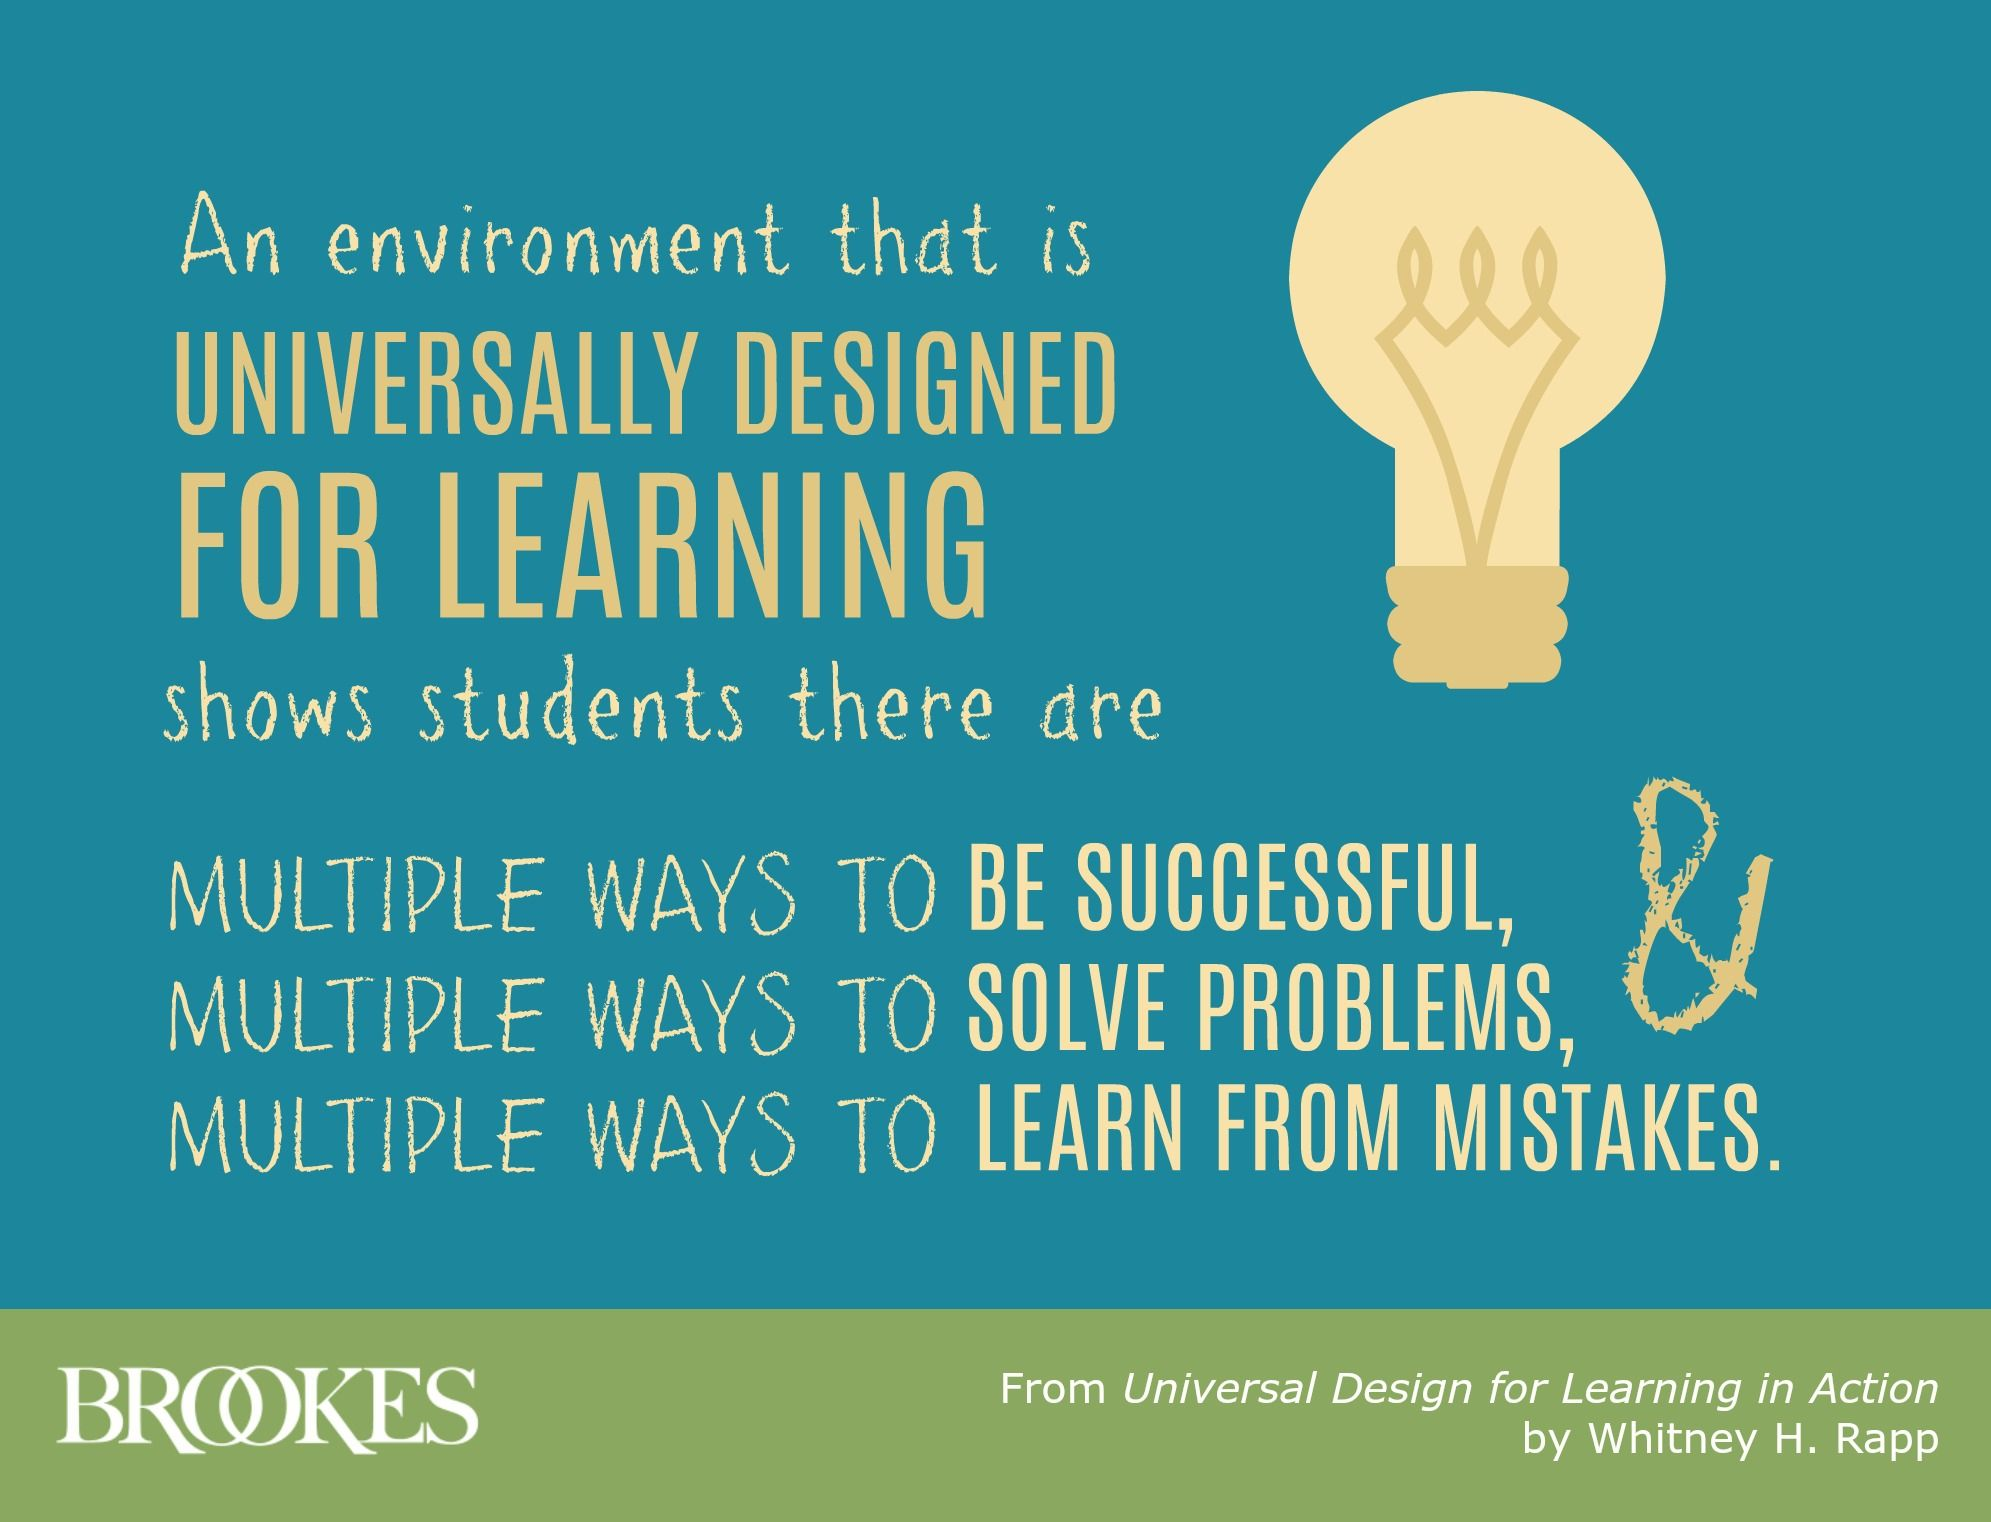 Udl Quotes An Environment That Is Universally Designed For